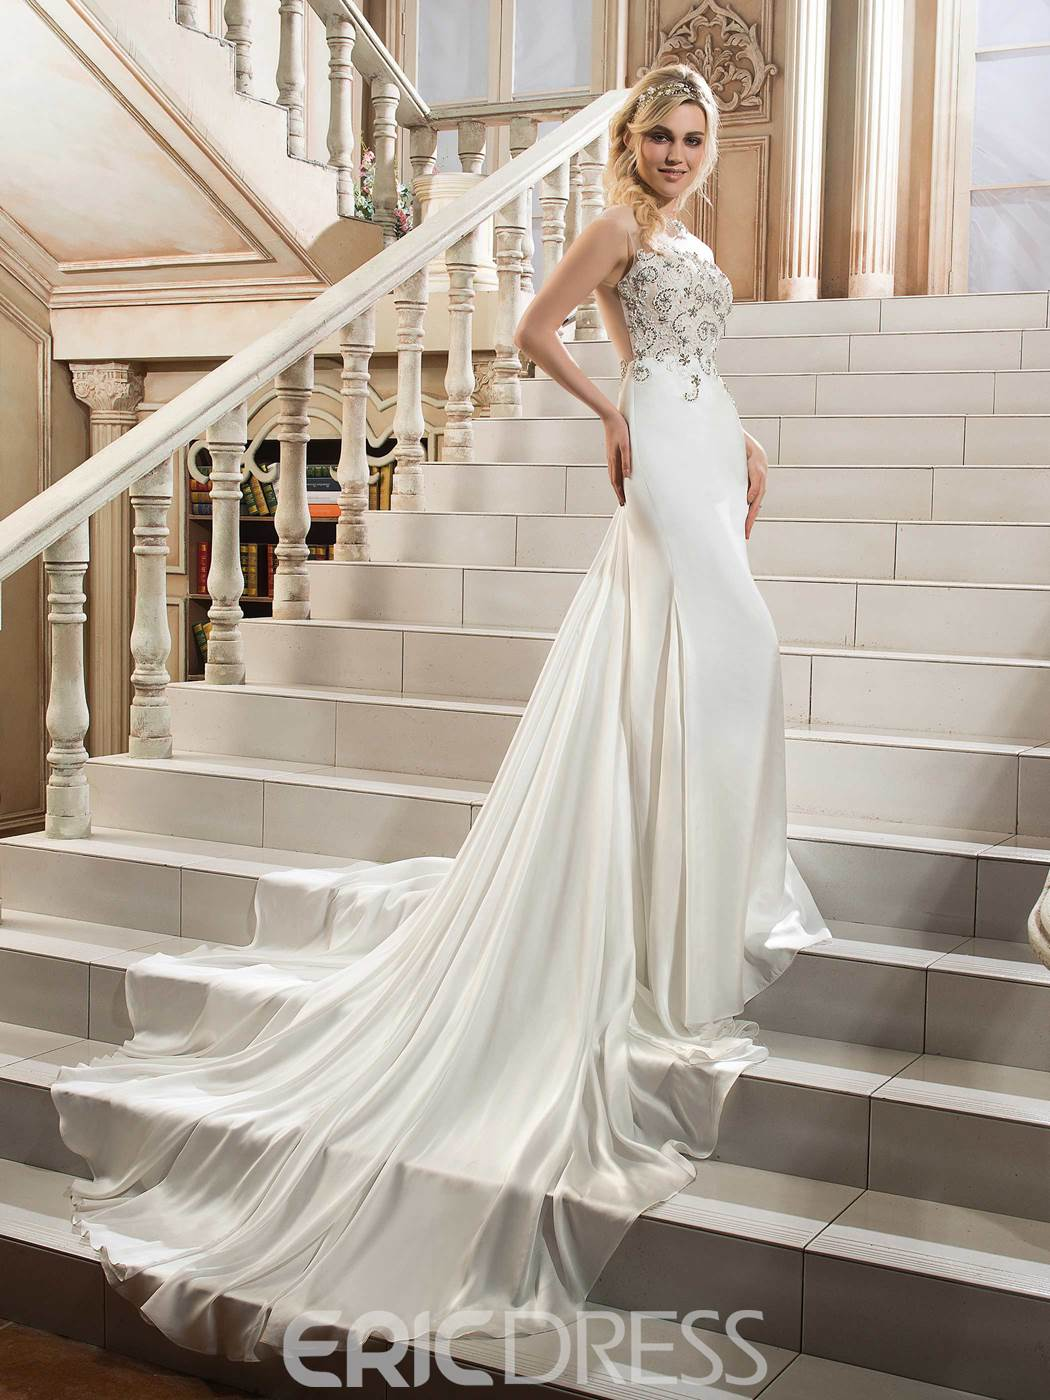 Ericdress Sheath Backless Illusion Neckline Beaded Wedding Dress